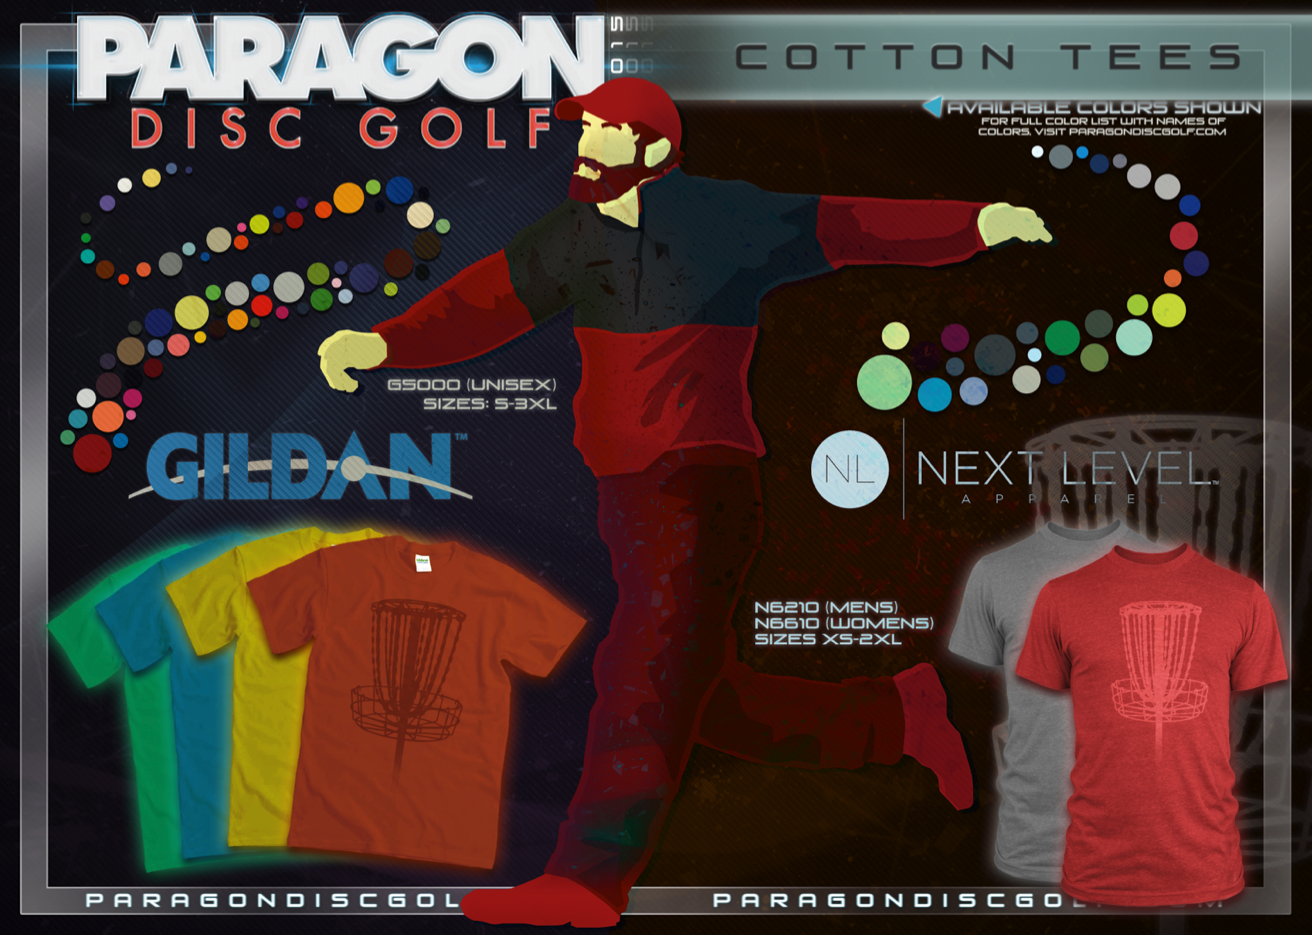 50 custom printed next level t shirts paragon disc golf Next level printed shirts